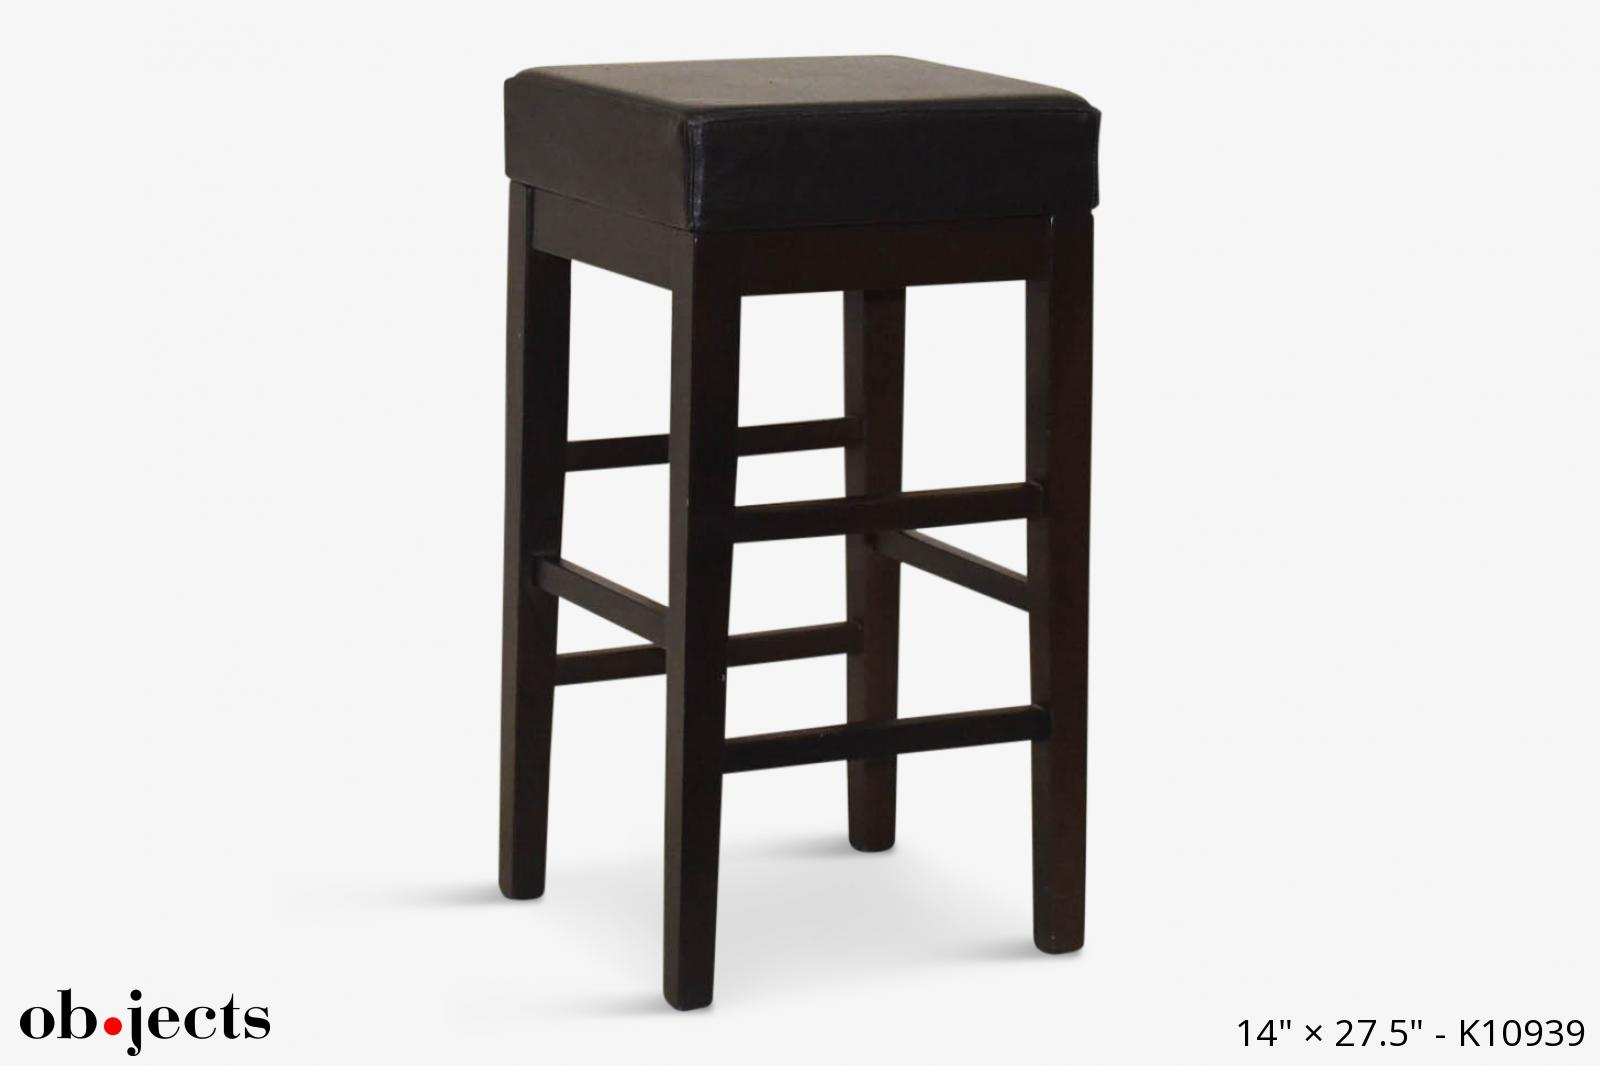 Fine Stool Square Black Seat Dark Brown Legs Objects Ncnpc Chair Design For Home Ncnpcorg